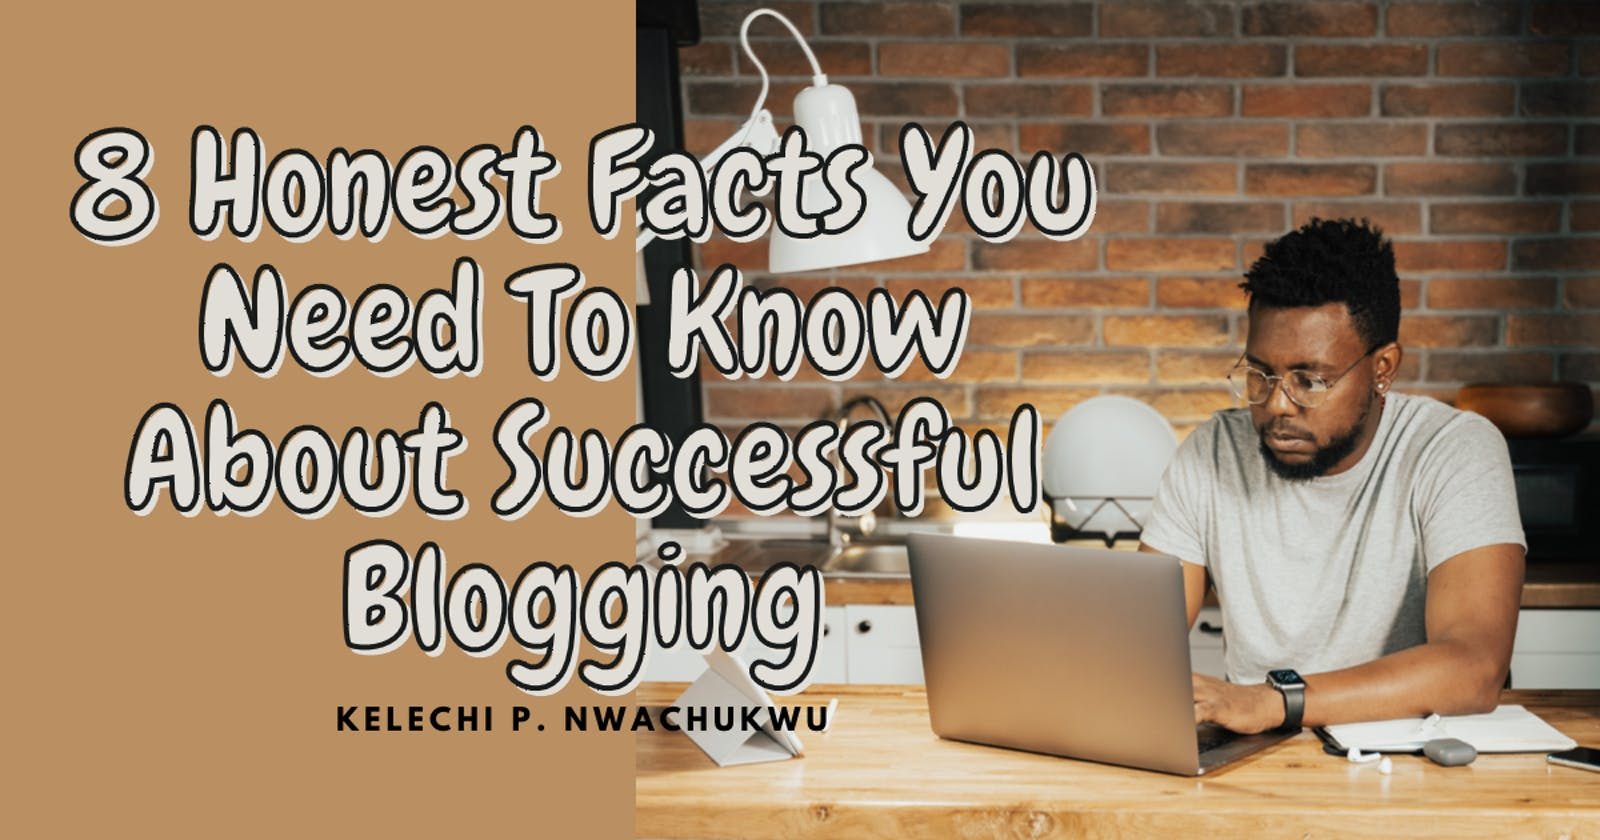 8 Honest Facts You Need To Know About Successful Blogging